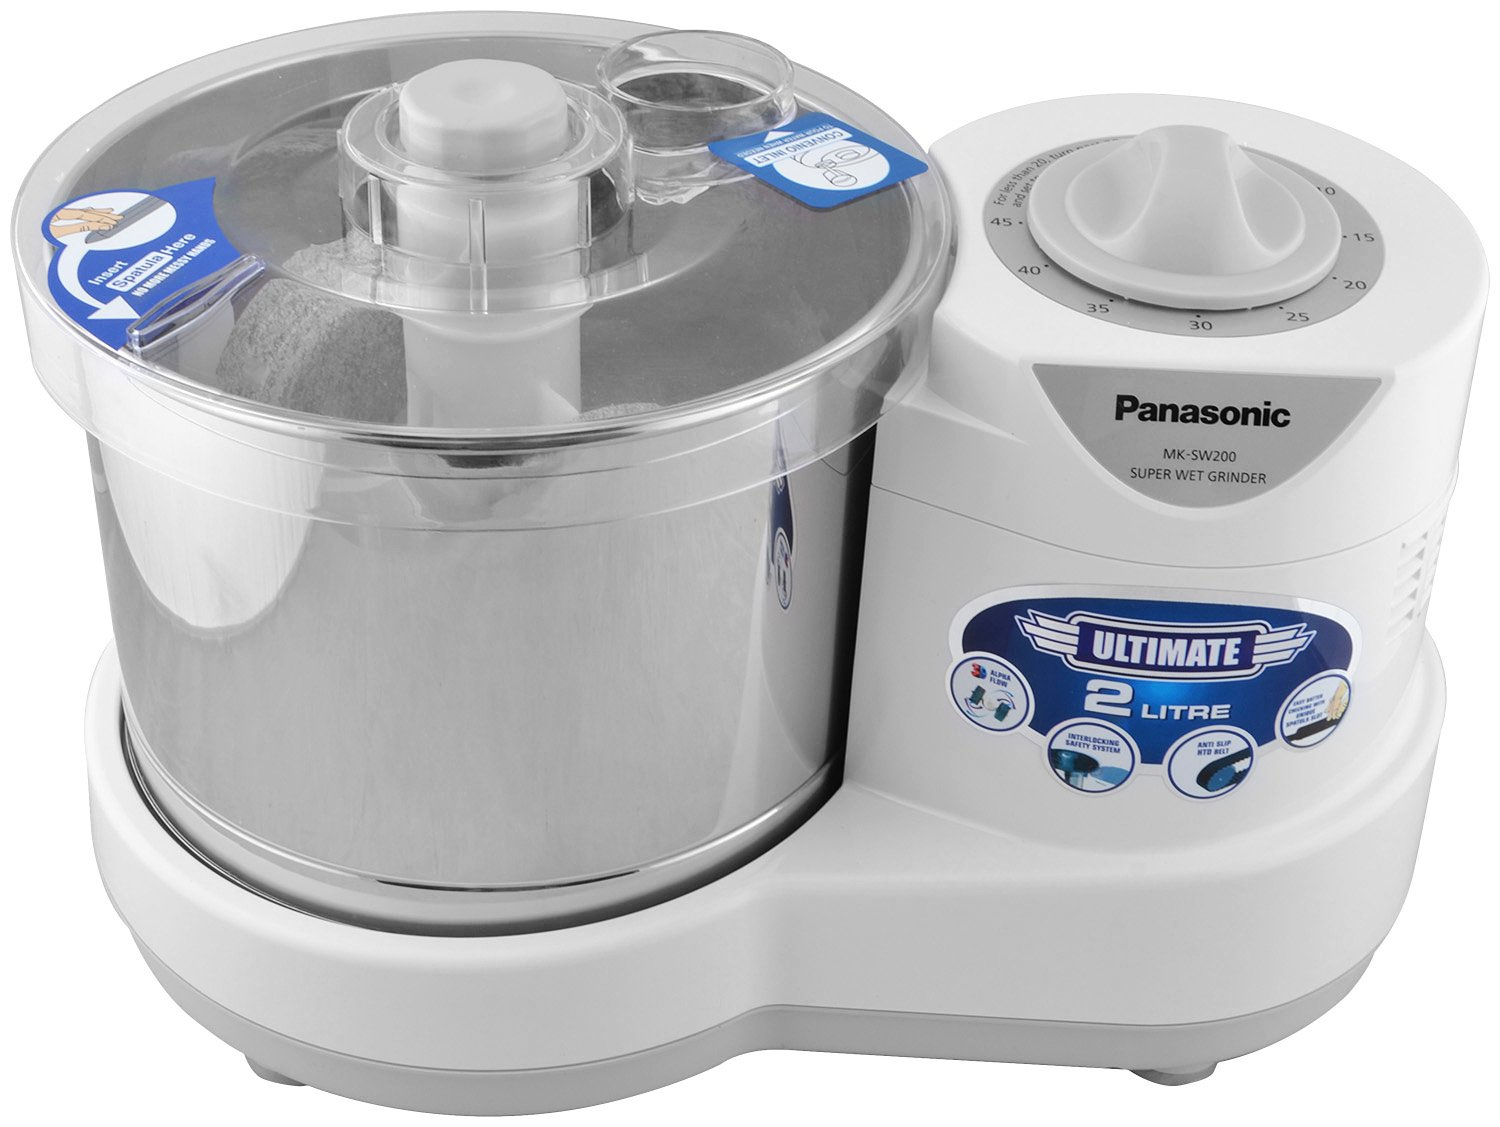 Panasonic 230-Watt Plastic Wet Grinder with an automatic timer, 2 litres, white and metallic